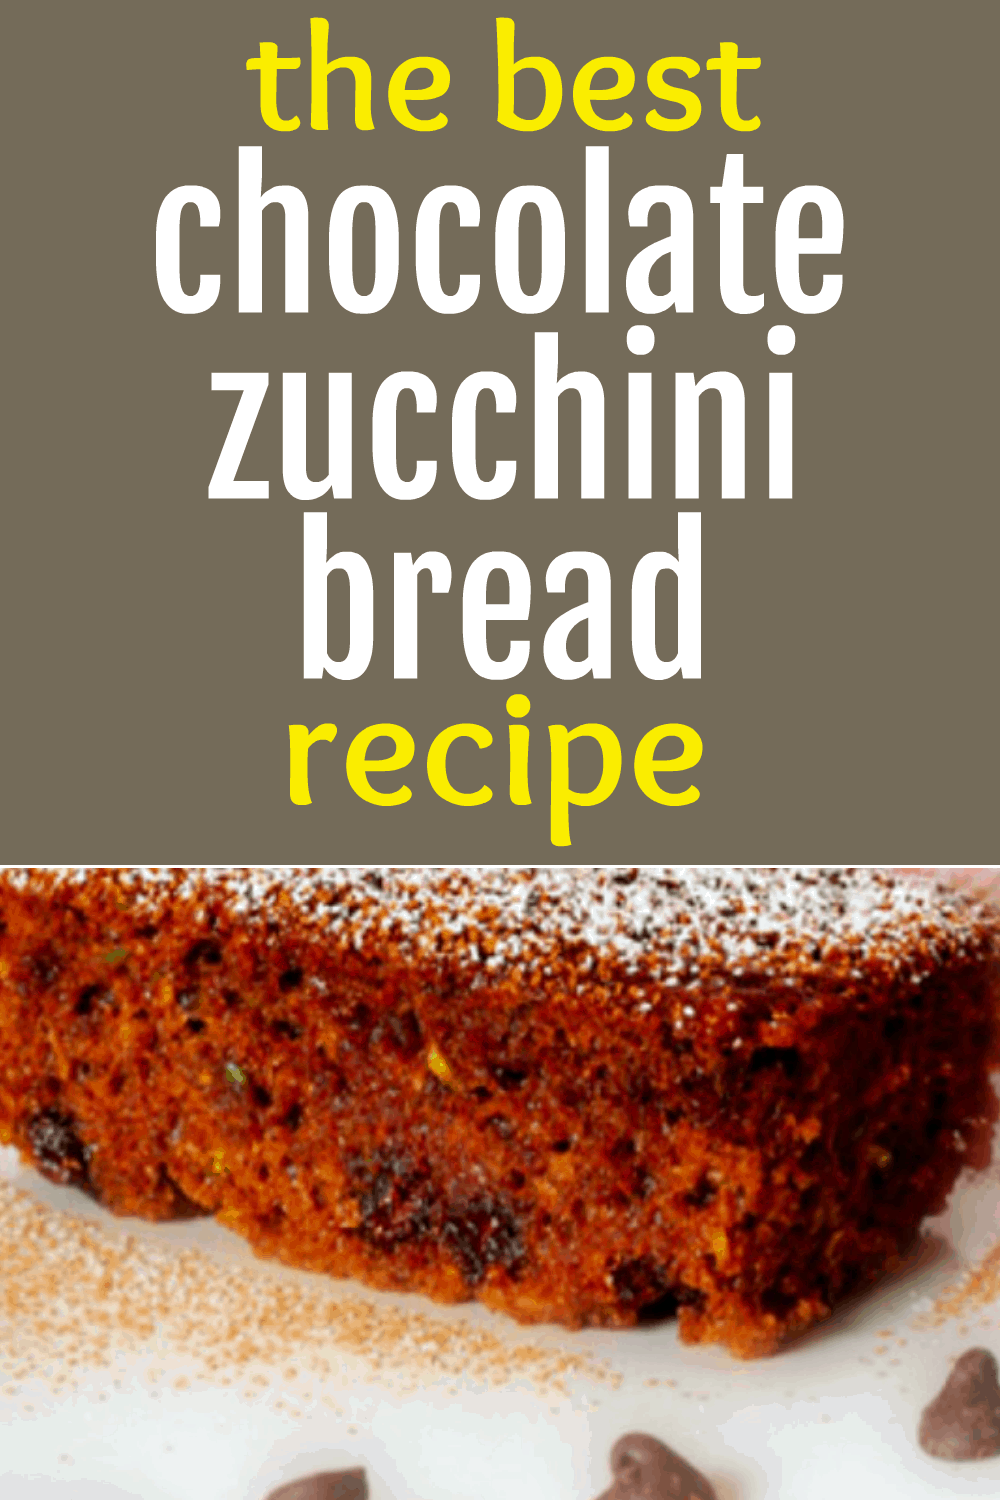 CHOCOLATE ZUCCHINI BREAD text overlay over a loaf of chocolate zucchini bread on a table